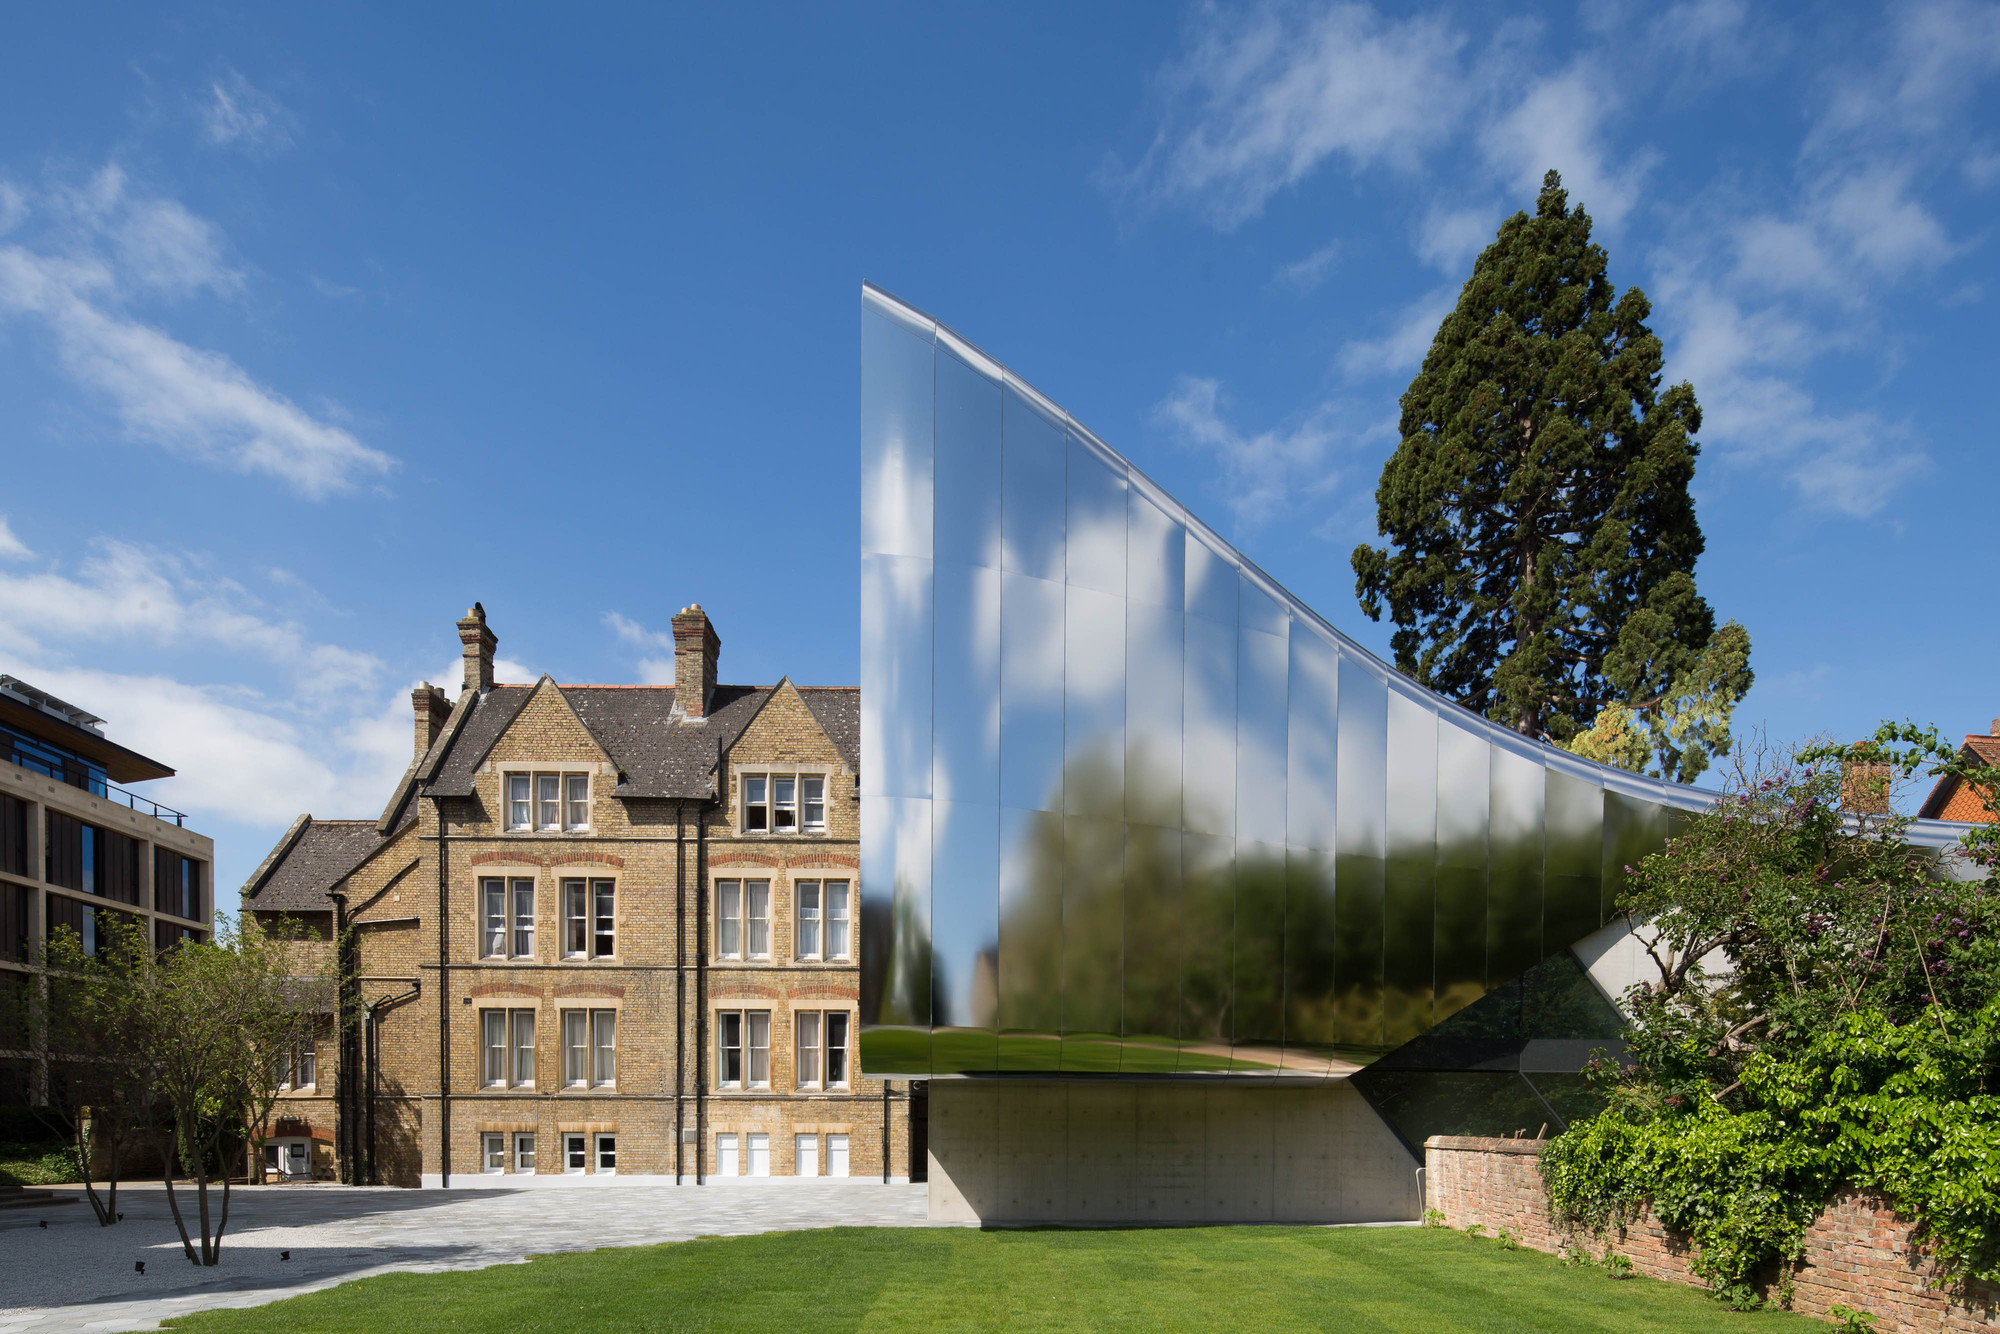 Adam architecture groundbreaking country house in hampshire - The Investcorp Building St Antony S College Oxford Zaha Hadid Architects Image